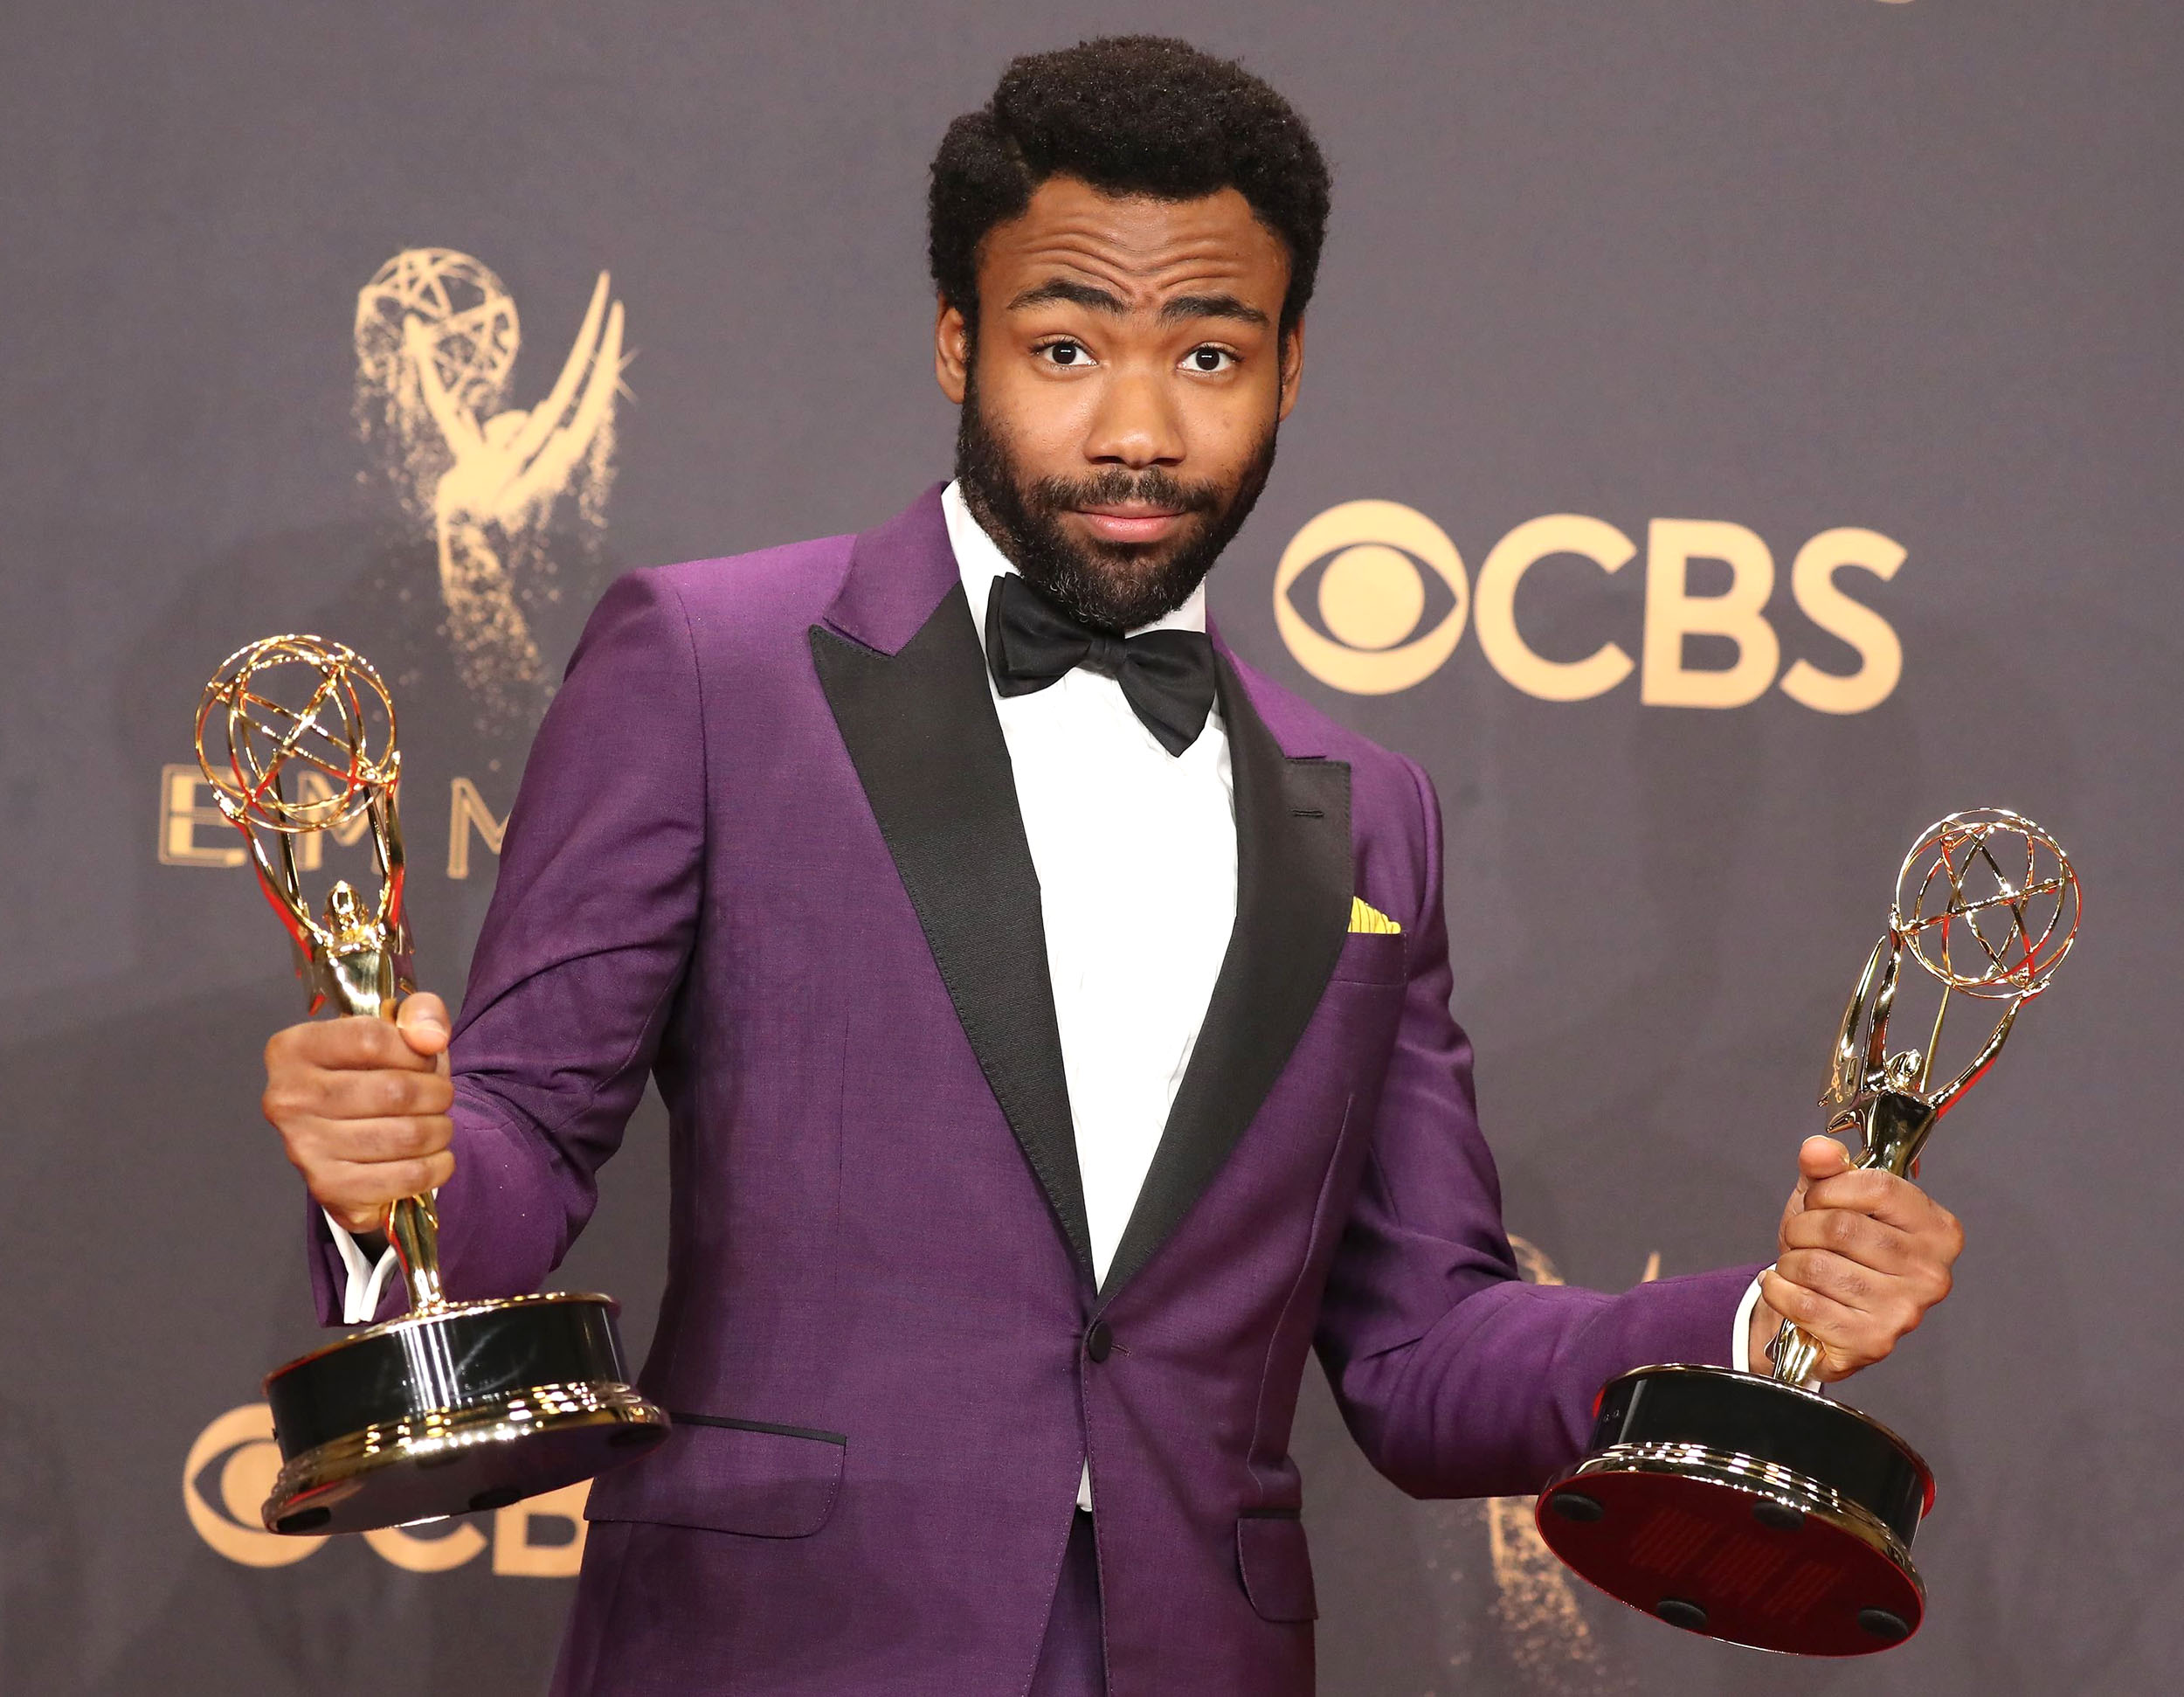 Image: Comedian Donald Glover